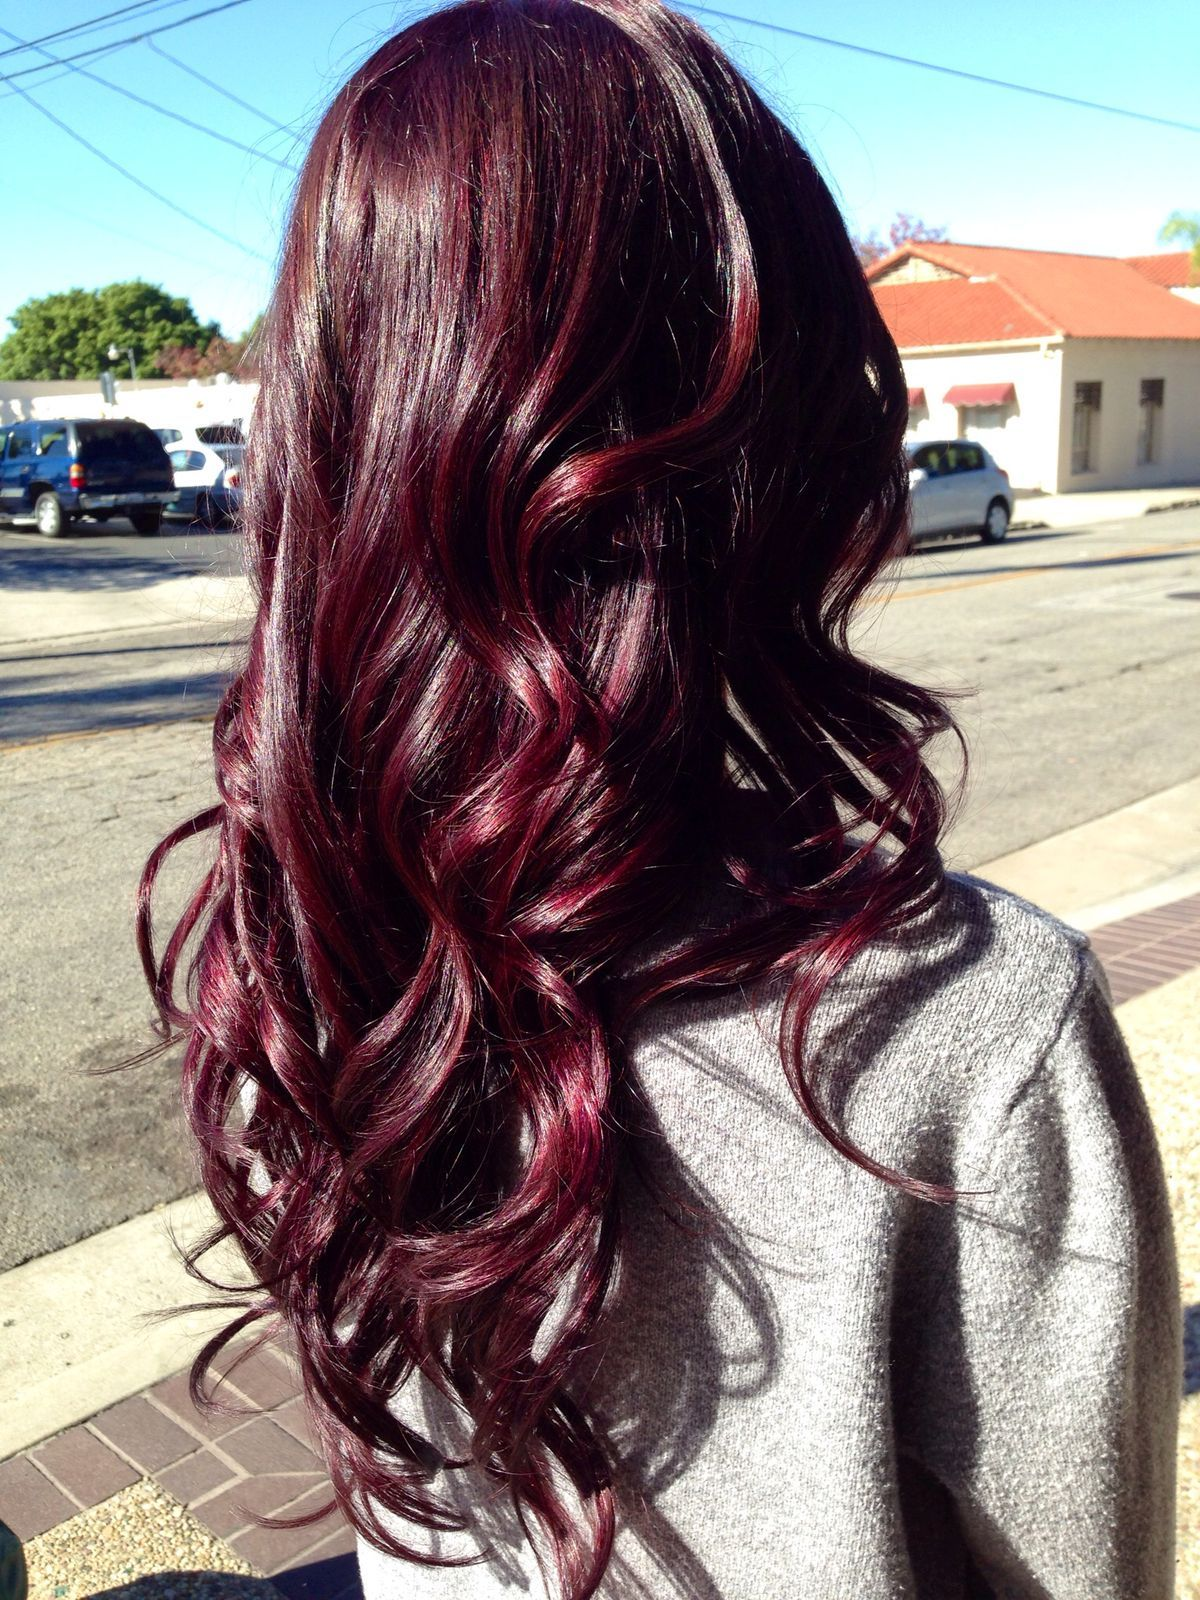 This Is Exactly What Im Aiming For Burgundyplum Not Too Red